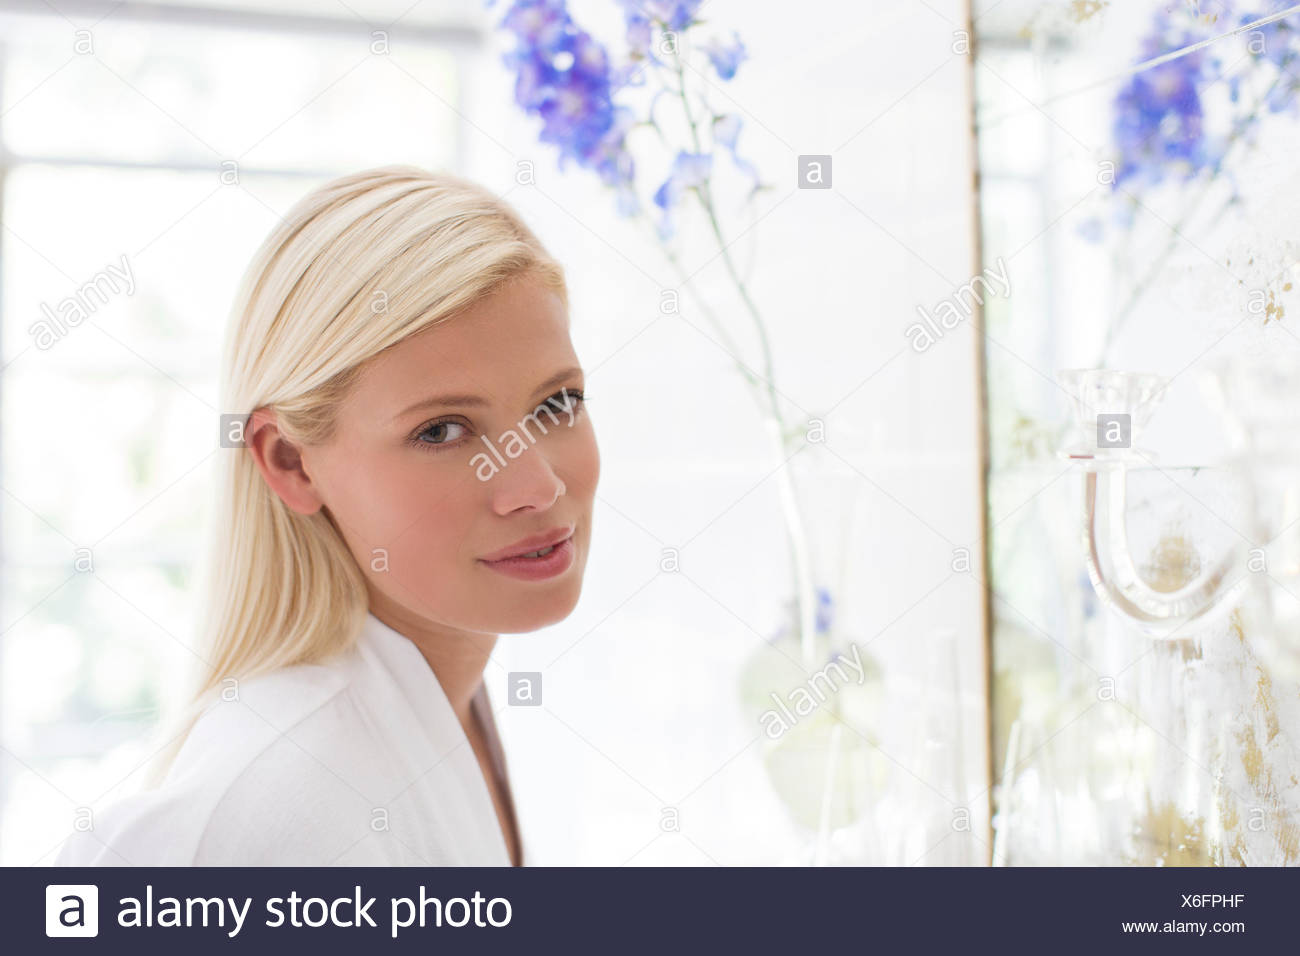 Woman standing at bathroom mirror - Stock Image